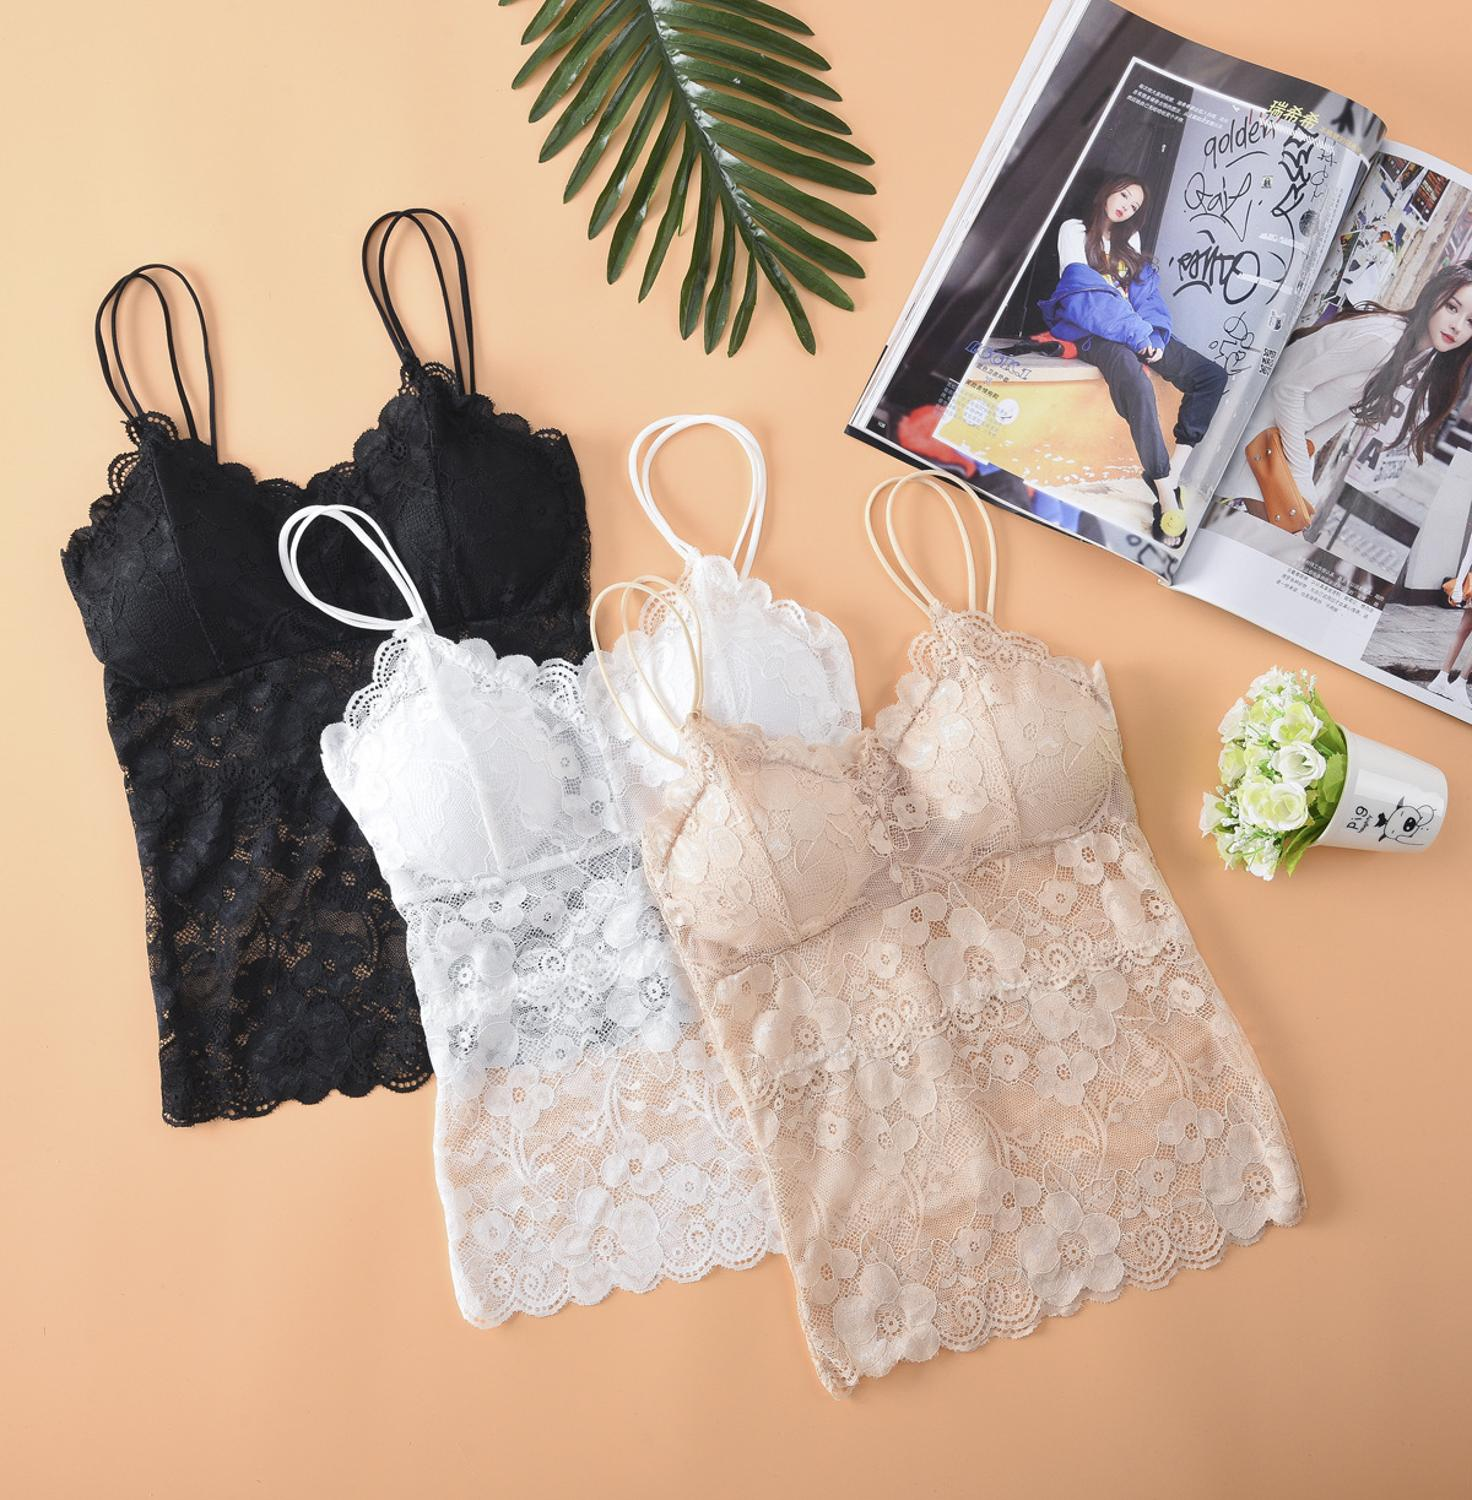 Sexy Bra Femme Crop Top Women Lace Bralette Padded Push Up Lingerie Seamless Intimates Wireless Bras Brassiere Underwear